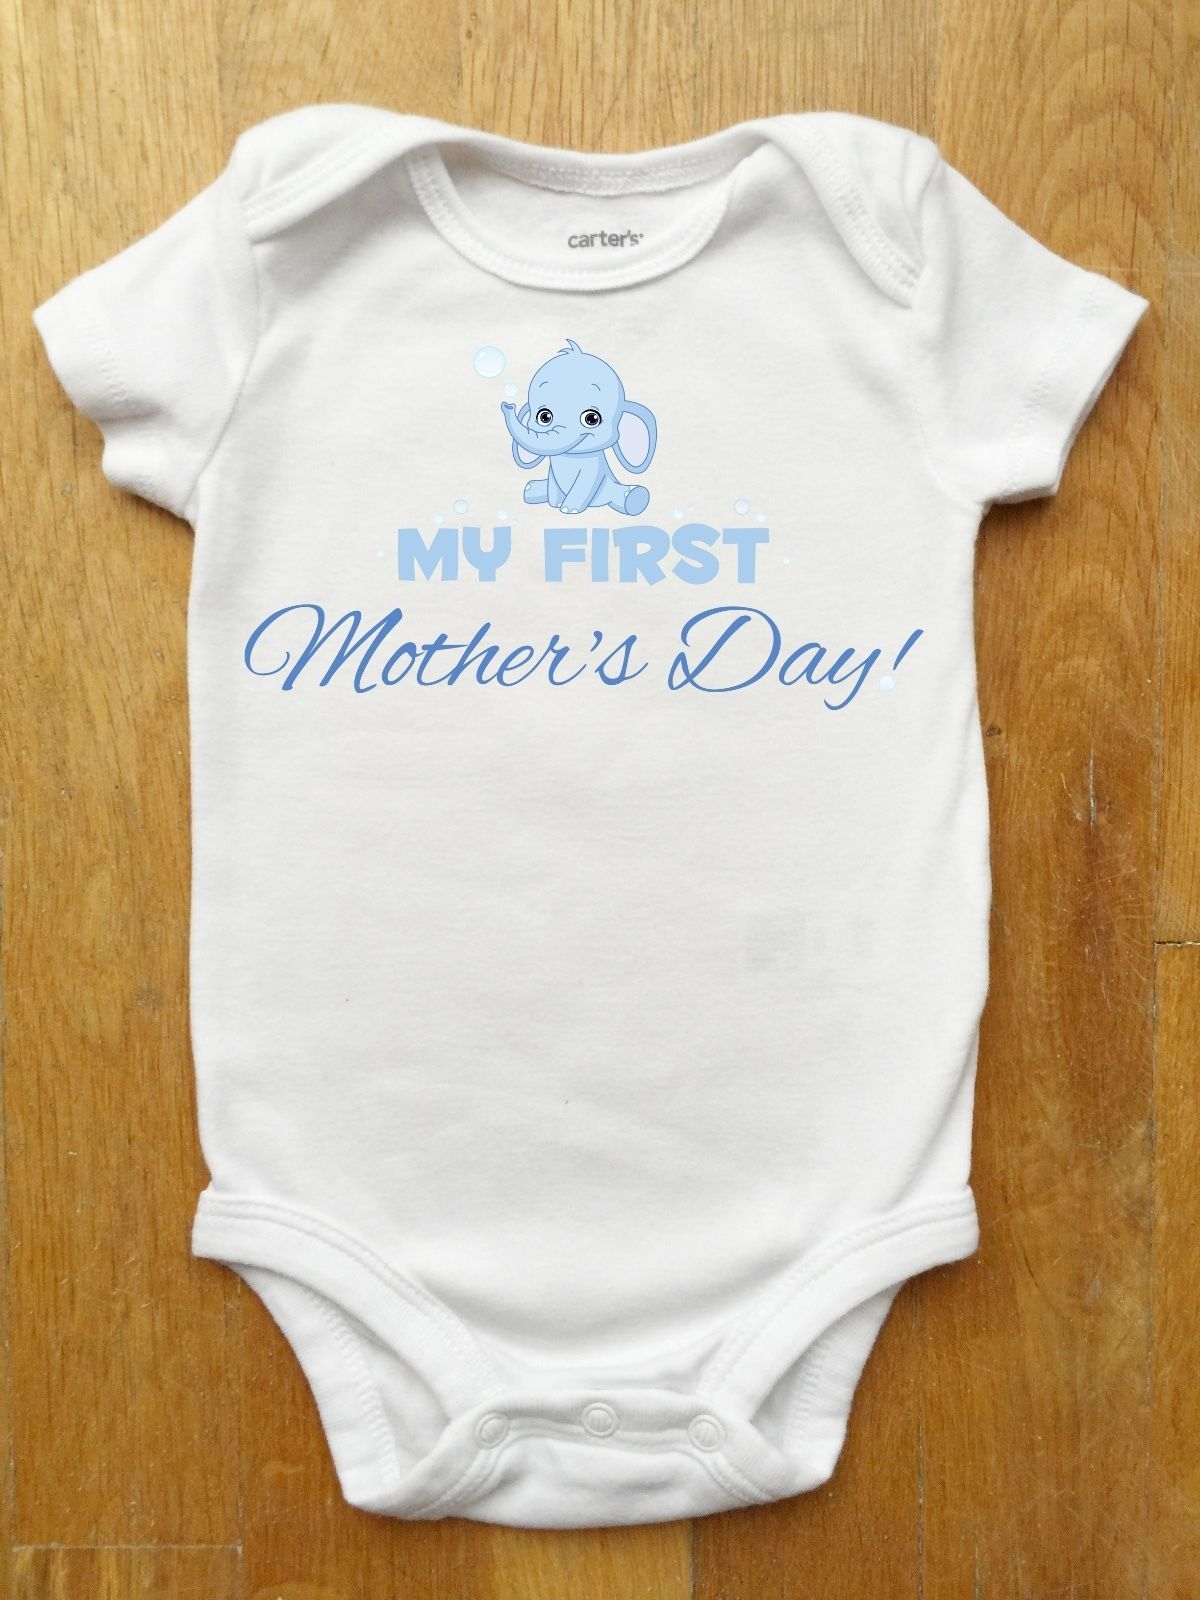 44225f697 First Mothers Day Onesie for Baby Boys with a Cute Elephant Blowing Bubbles